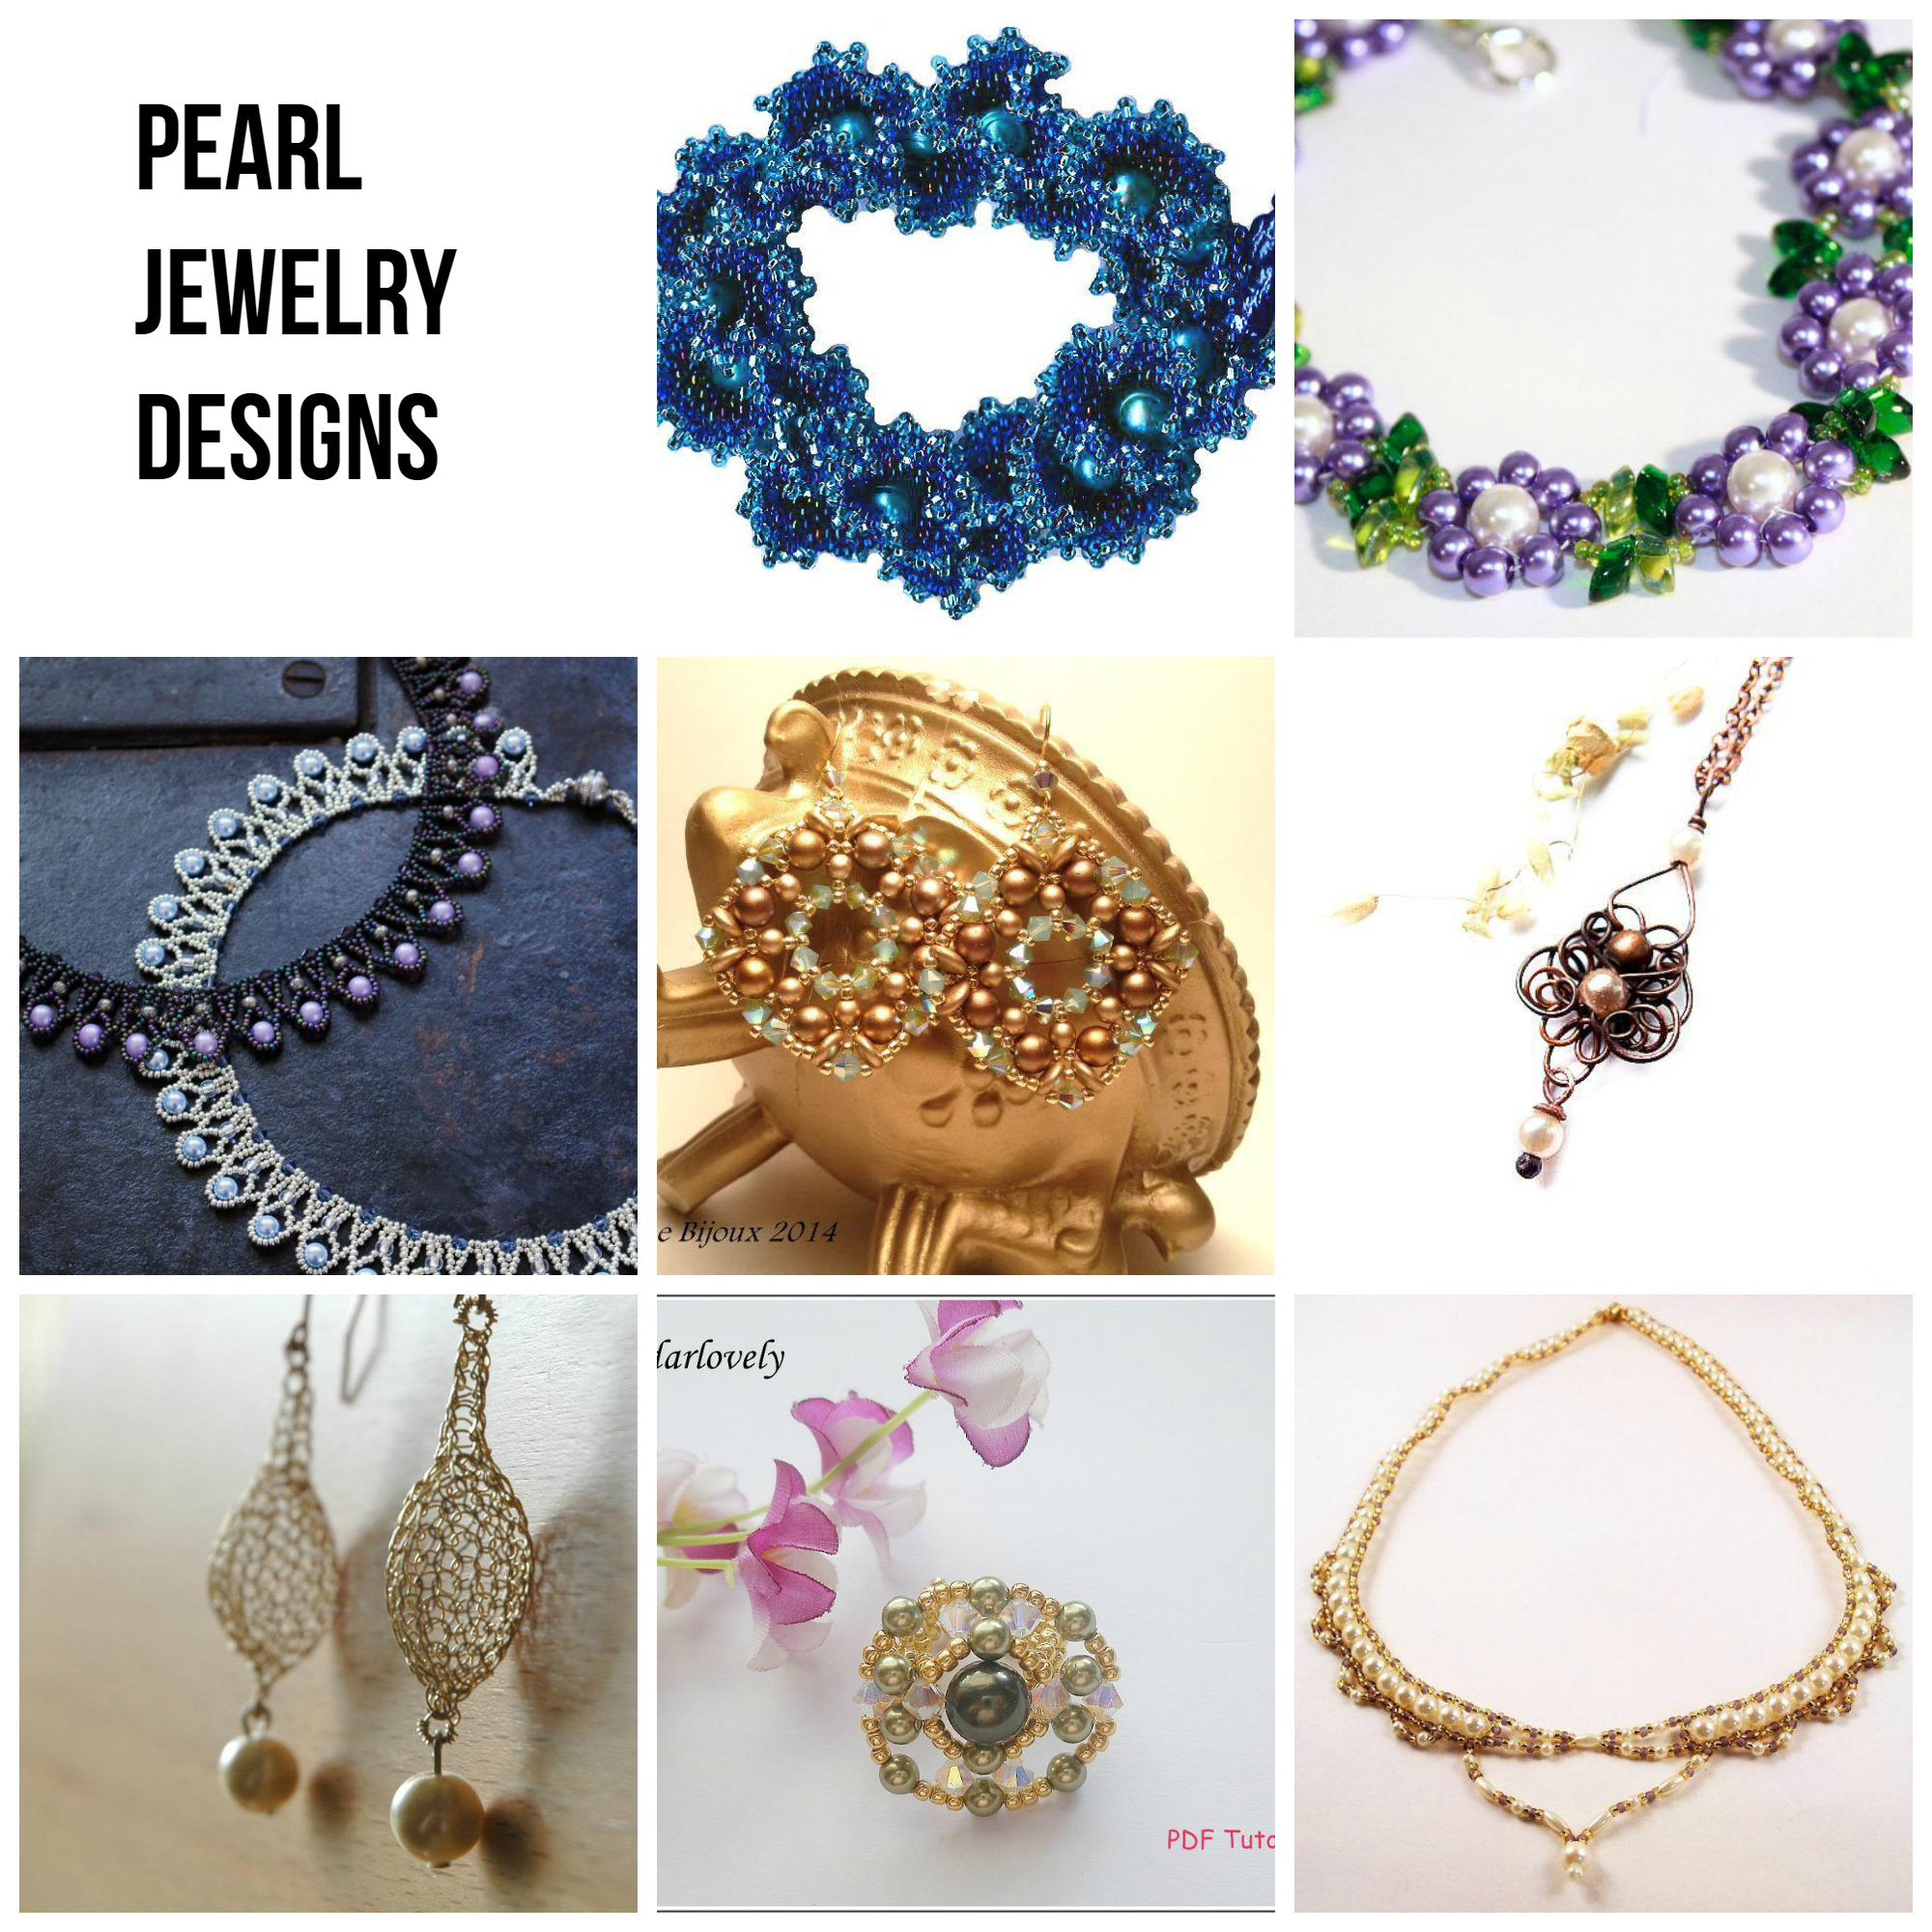 Pearl Jewelry Designs